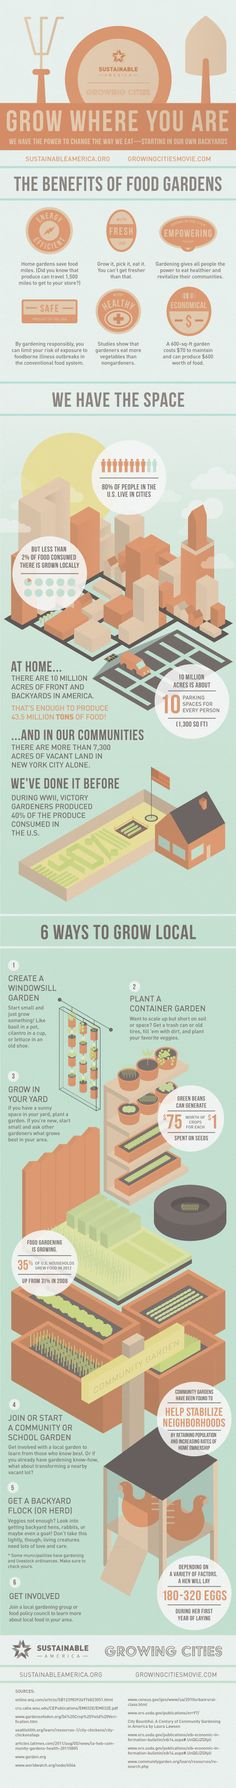 Grow Where You Are #gardening #infographic